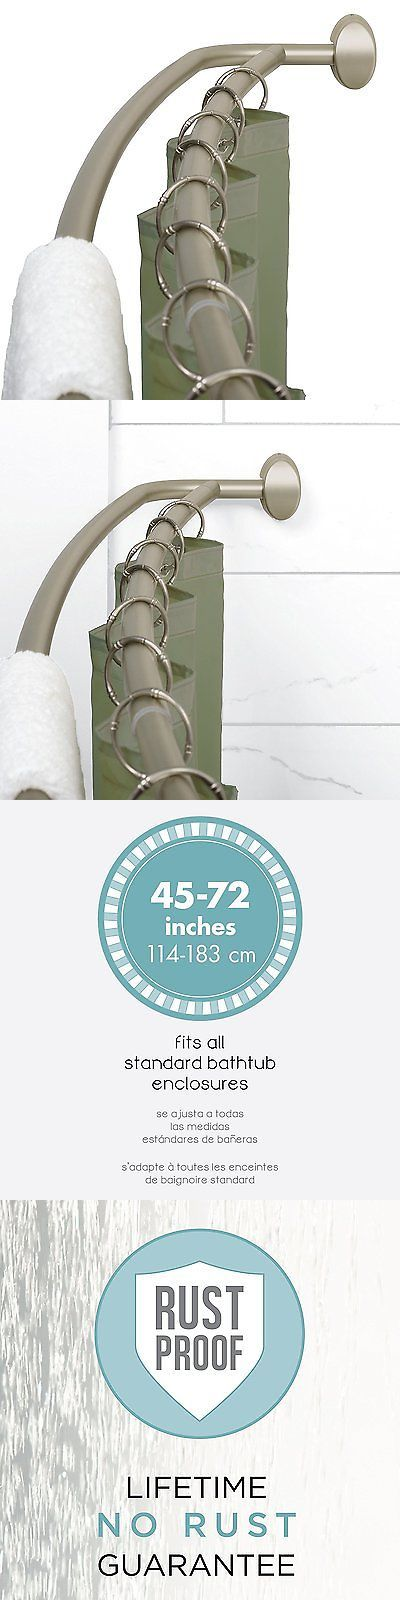 Shower Curtain Rods 168132: Openbox Zenna Home 35604Bn, Neverrust Aluminum Double Curved Shower Curtain Rod, -> BUY IT NOW ONLY: $42.43 on eBay!